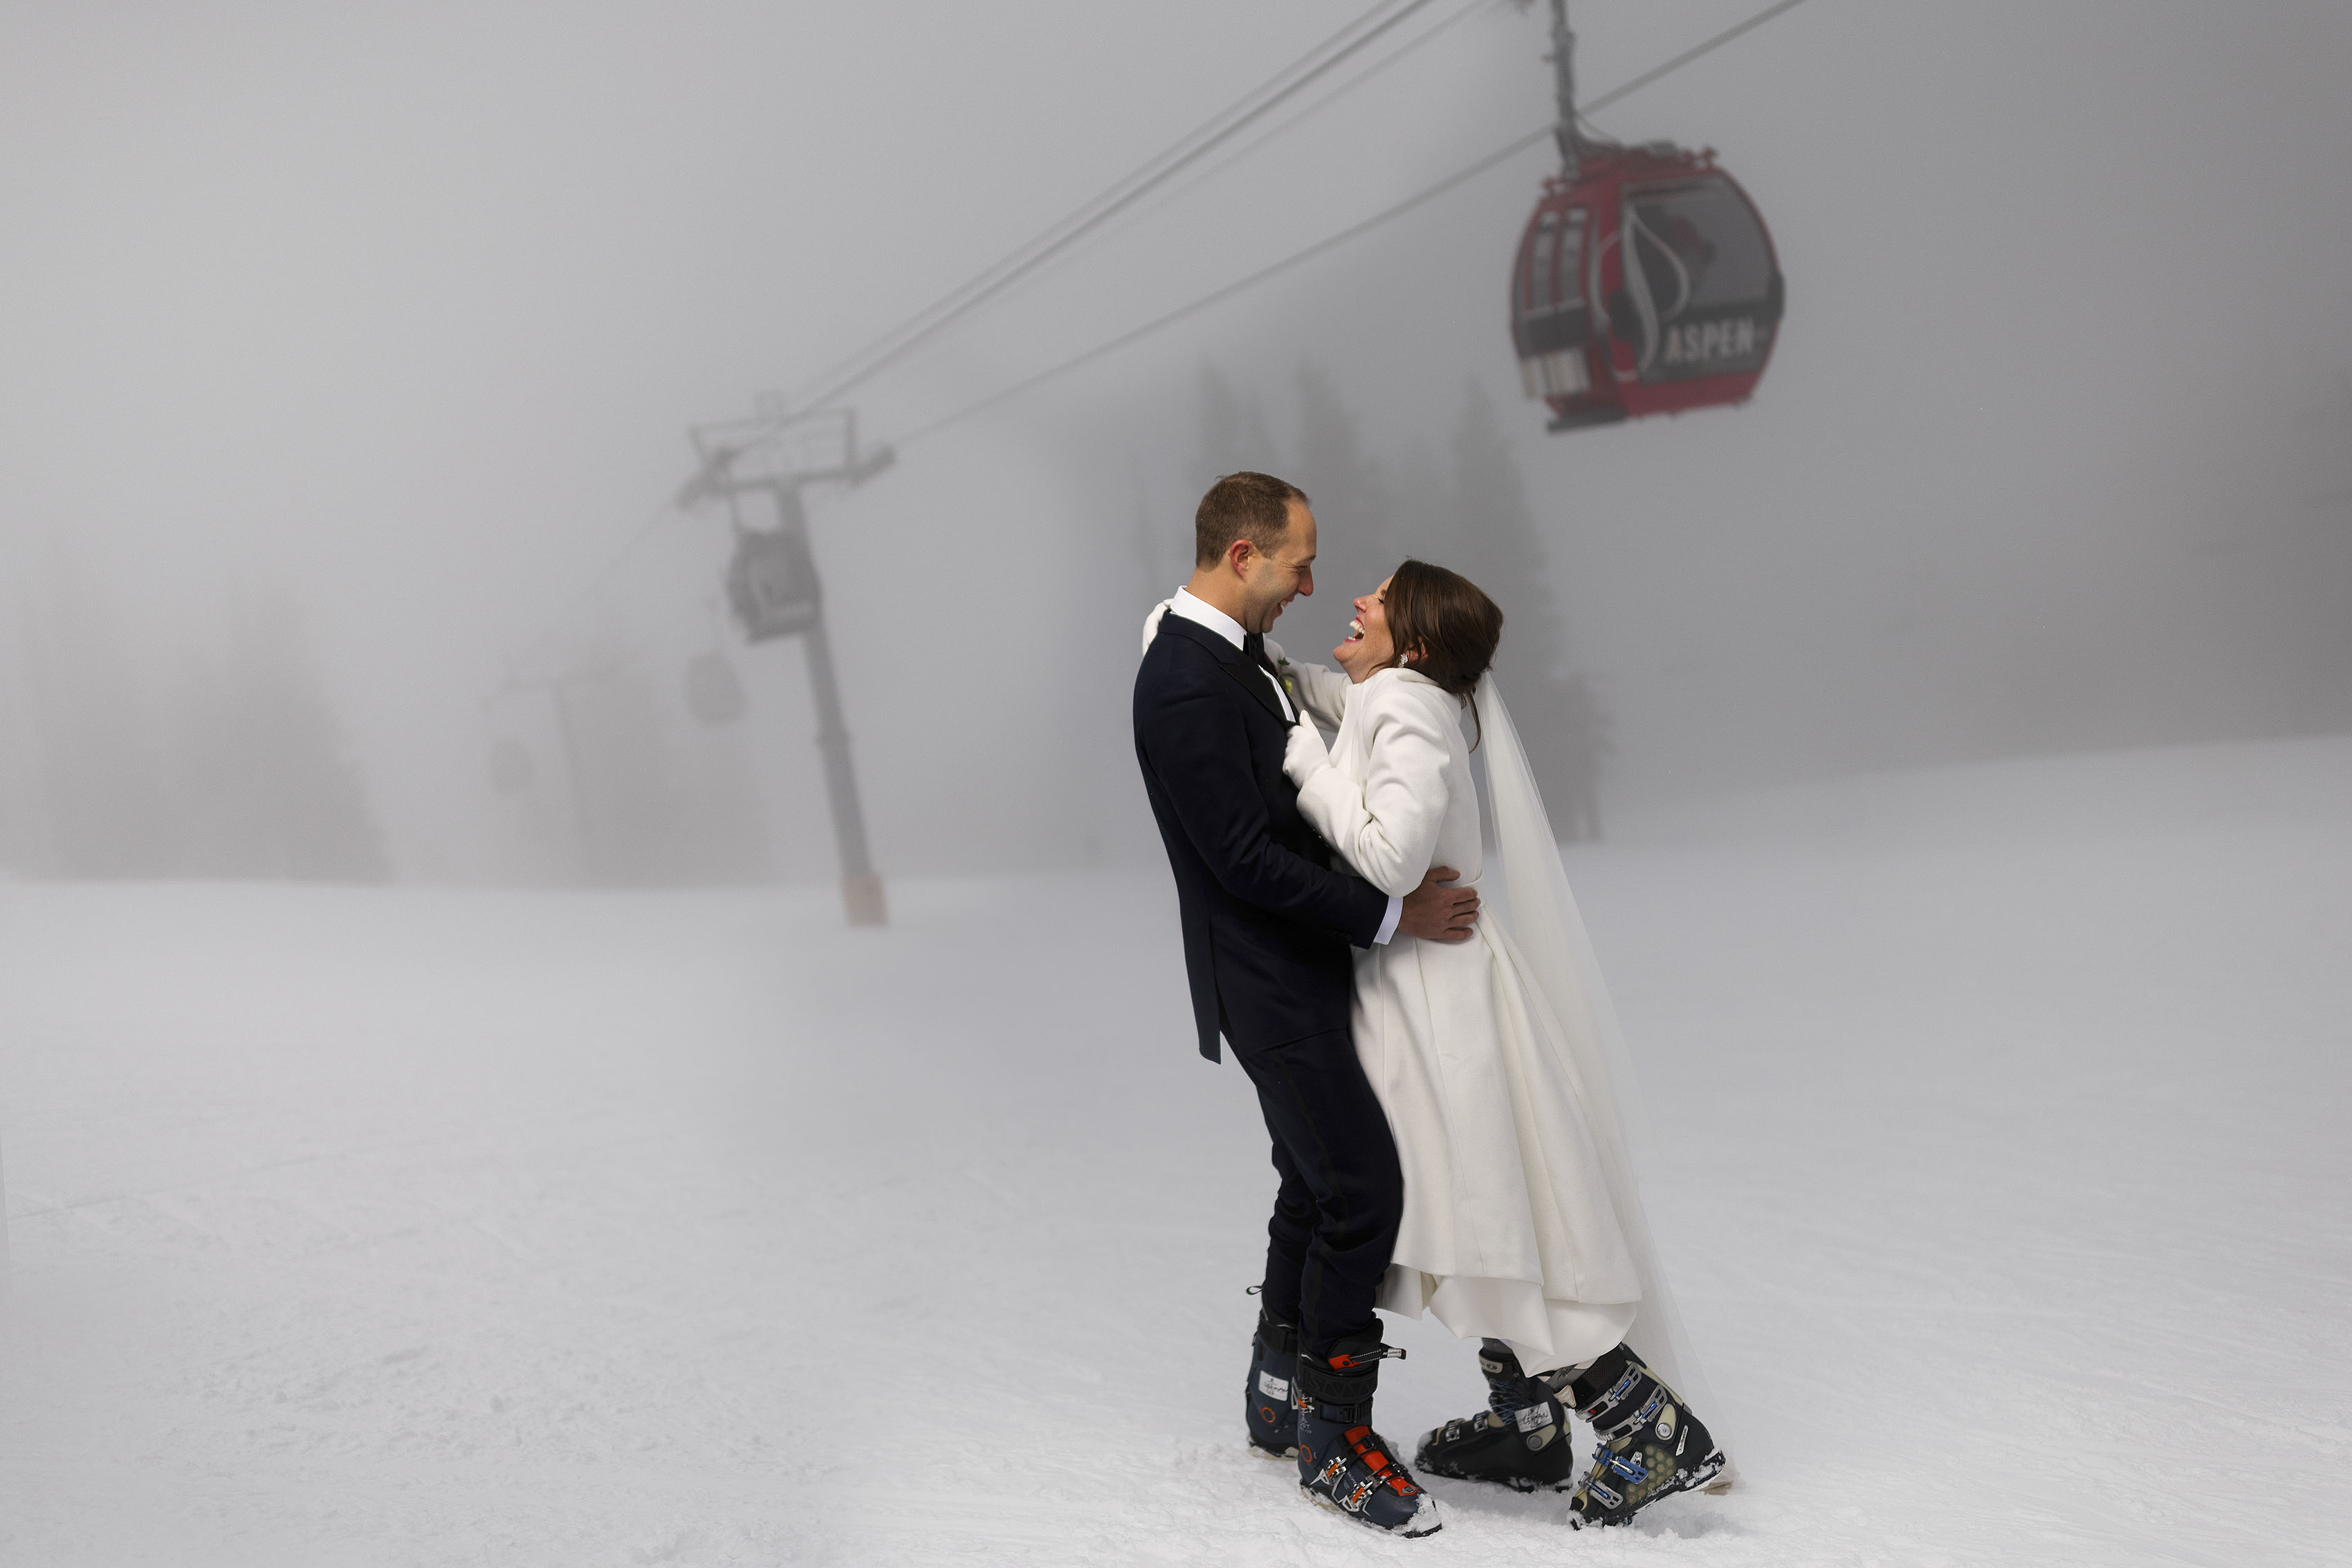 The bride and groom share a laugh while posing for a portrait as the fog rolls in on Aspen mountain following their micro wedding ceremony